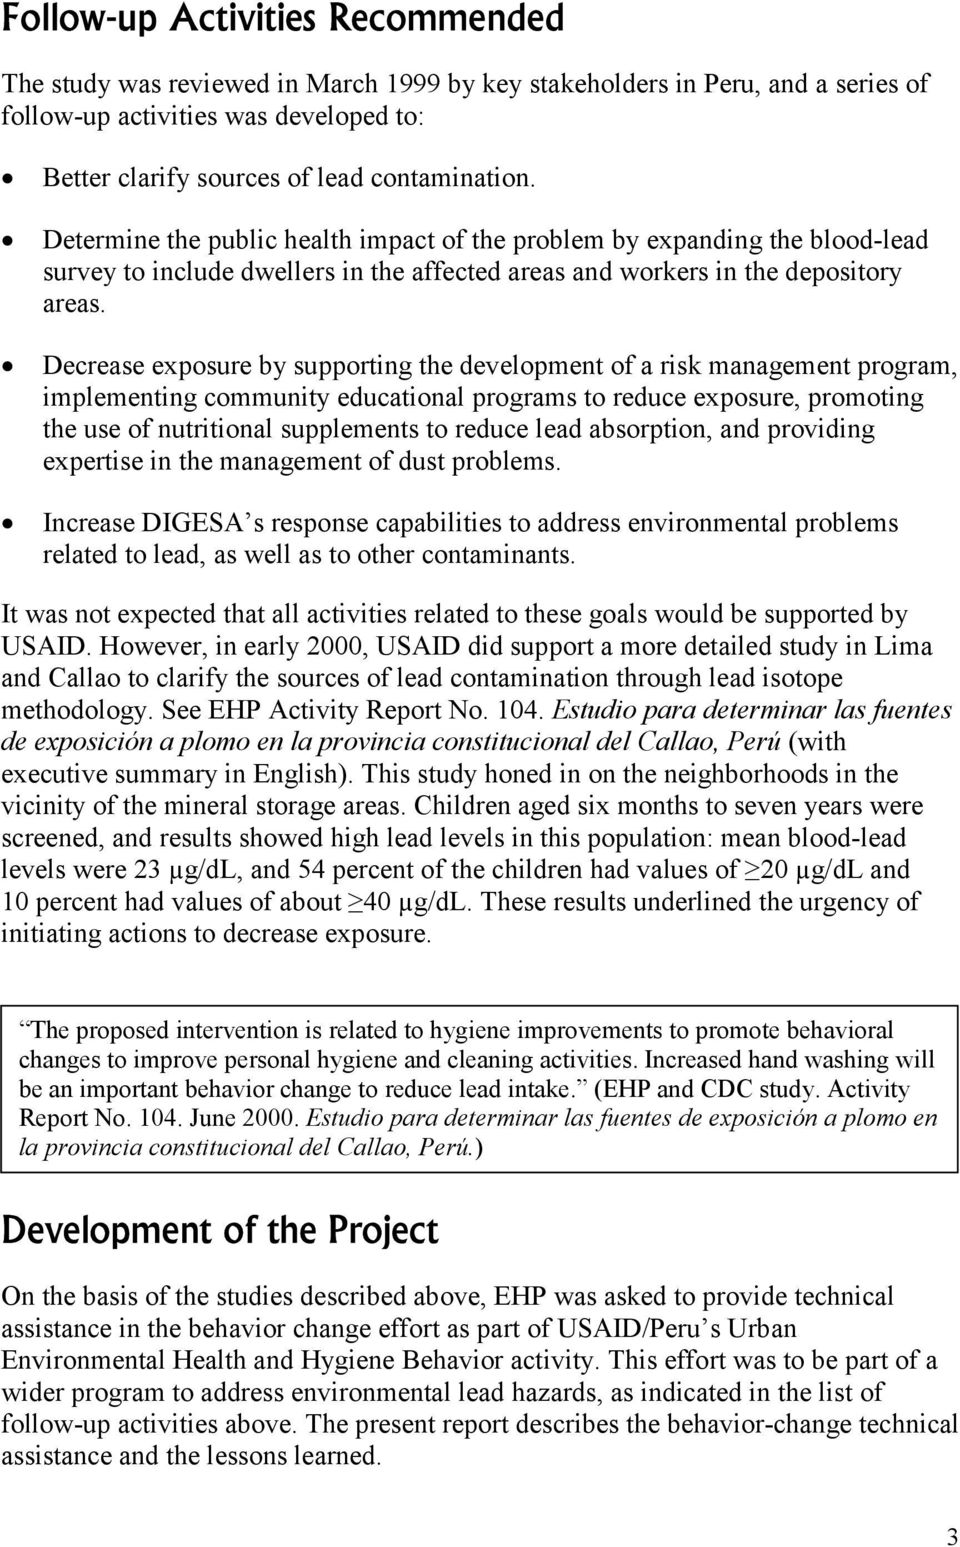 Decrease exposure by supporting the development of a risk management program, implementing community educational programs to reduce exposure, promoting the use of nutritional supplements to reduce